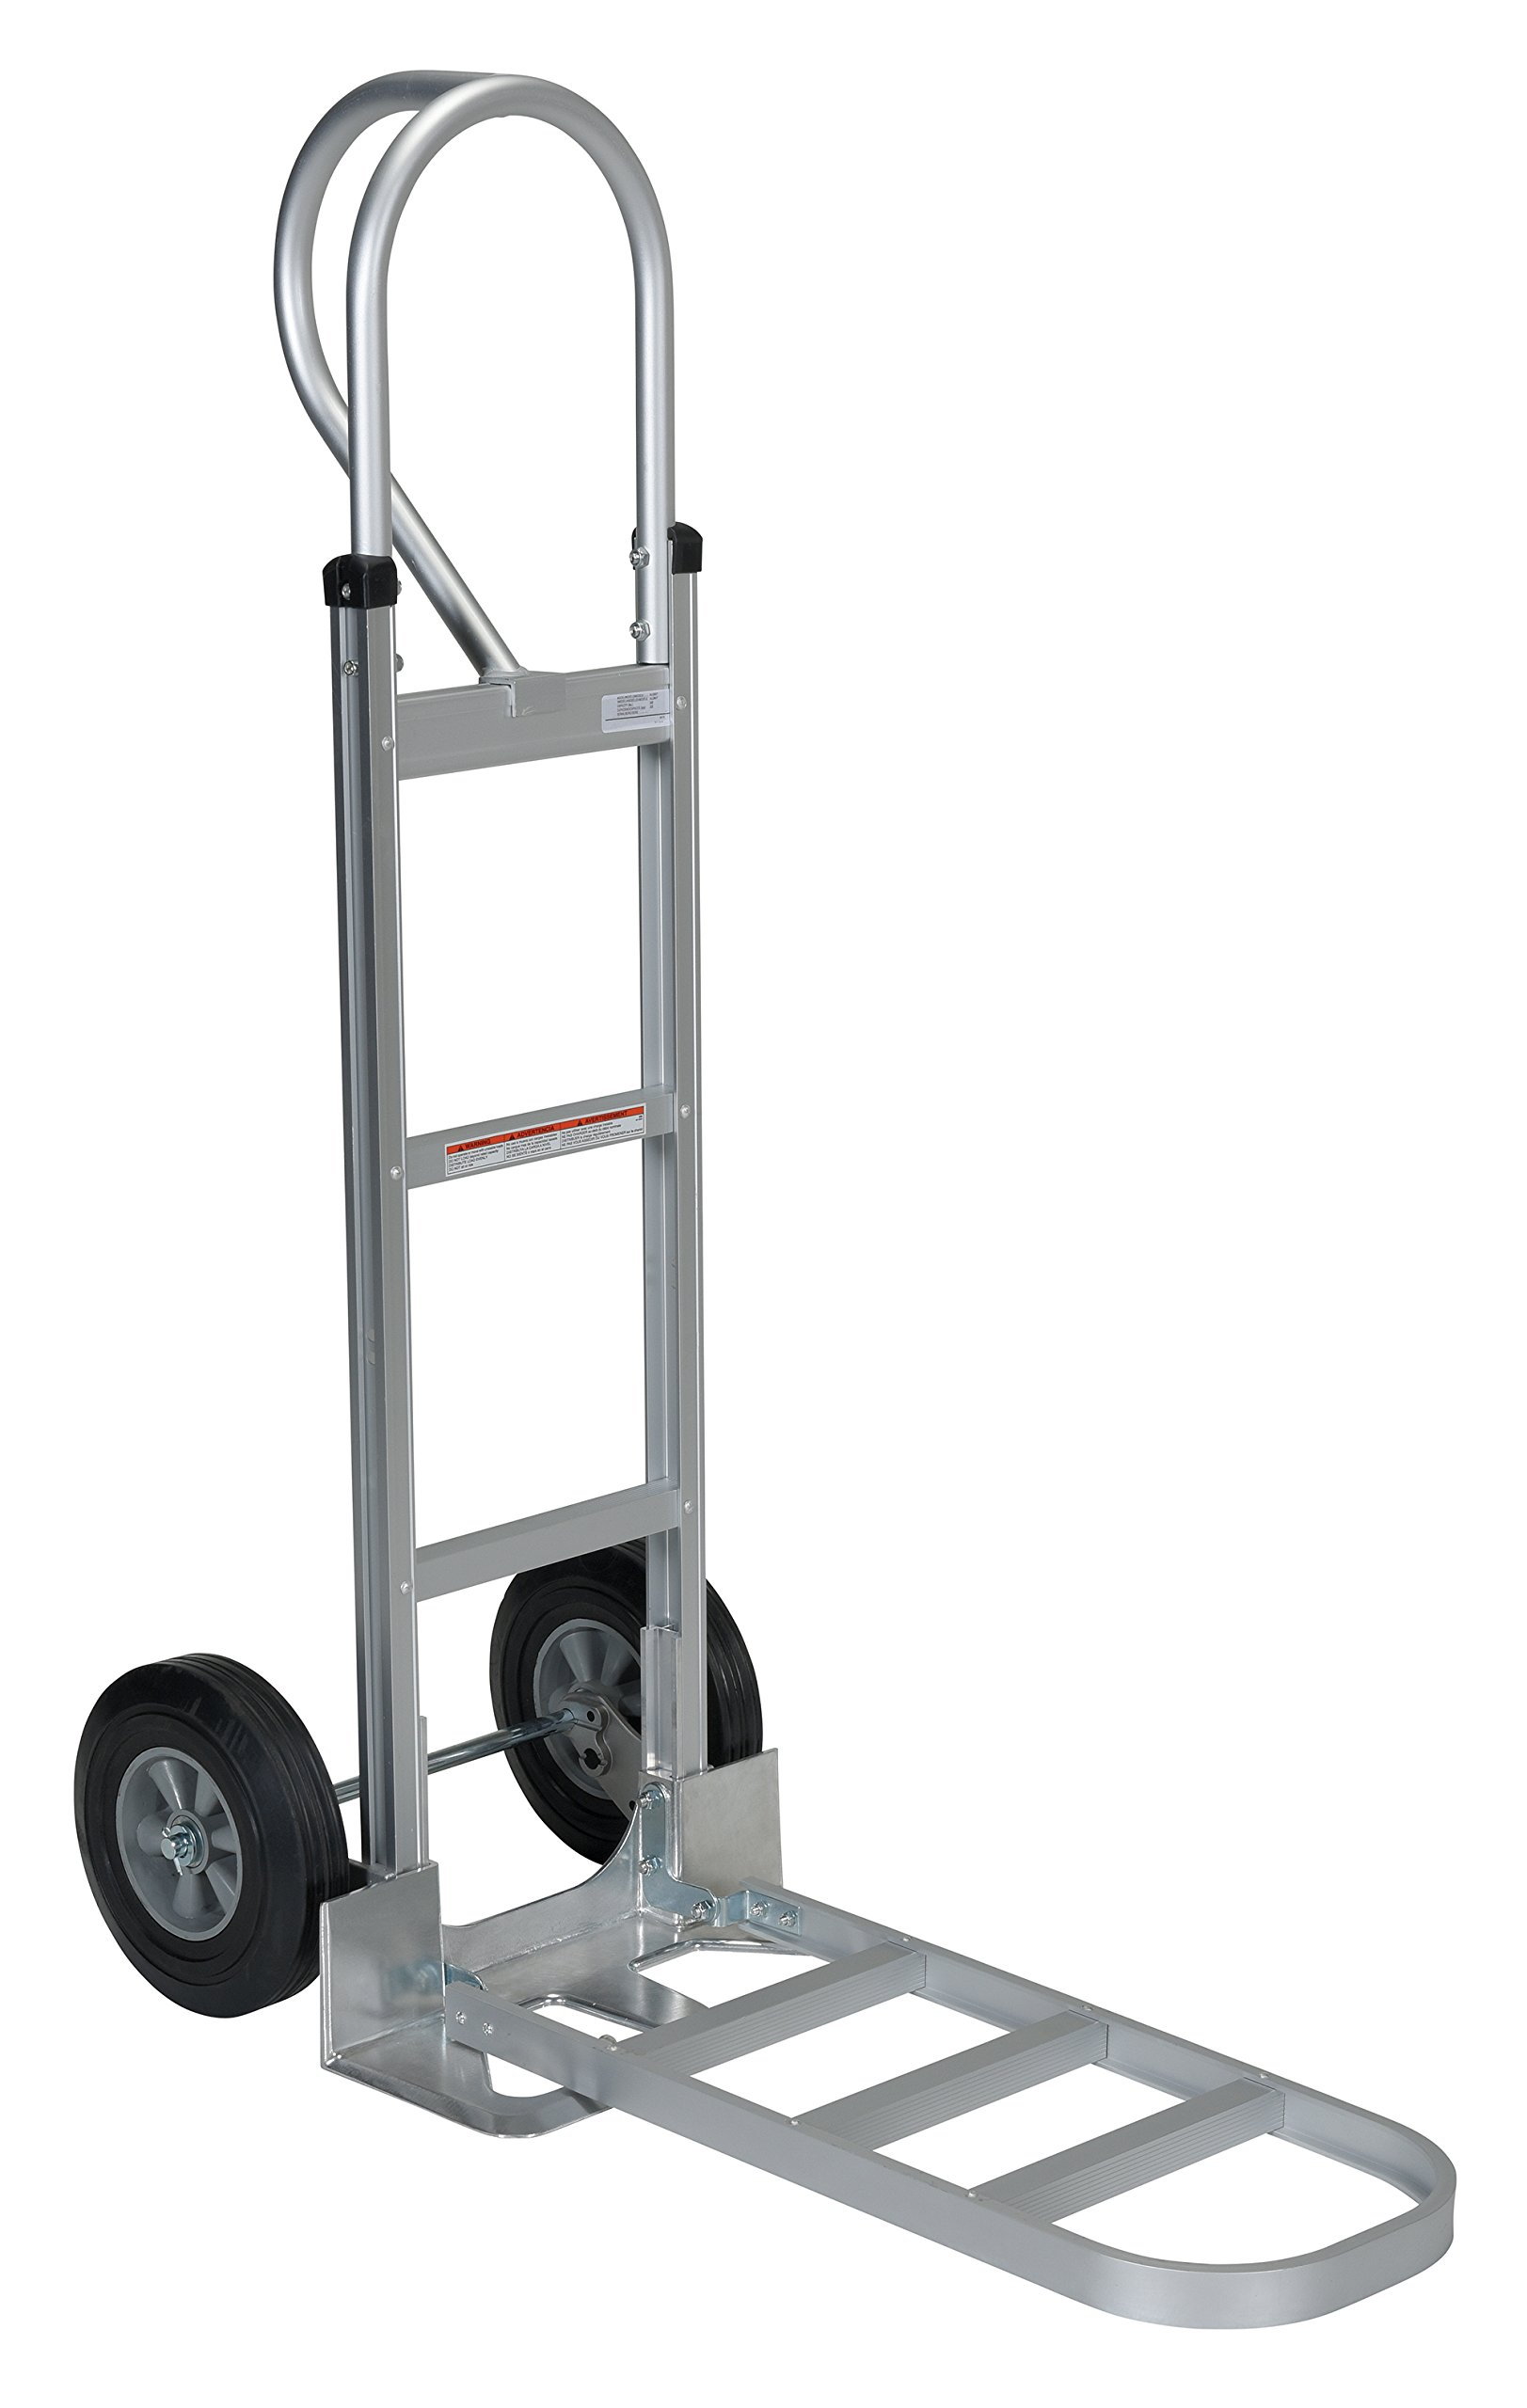 Vestil APHT-500A-HR Aluminum Hand Truck with P Handle, Rubber Wheels, 500 lbs Load Capacity, 50-1/2'' Height, 20'' Width X 19'' Depth